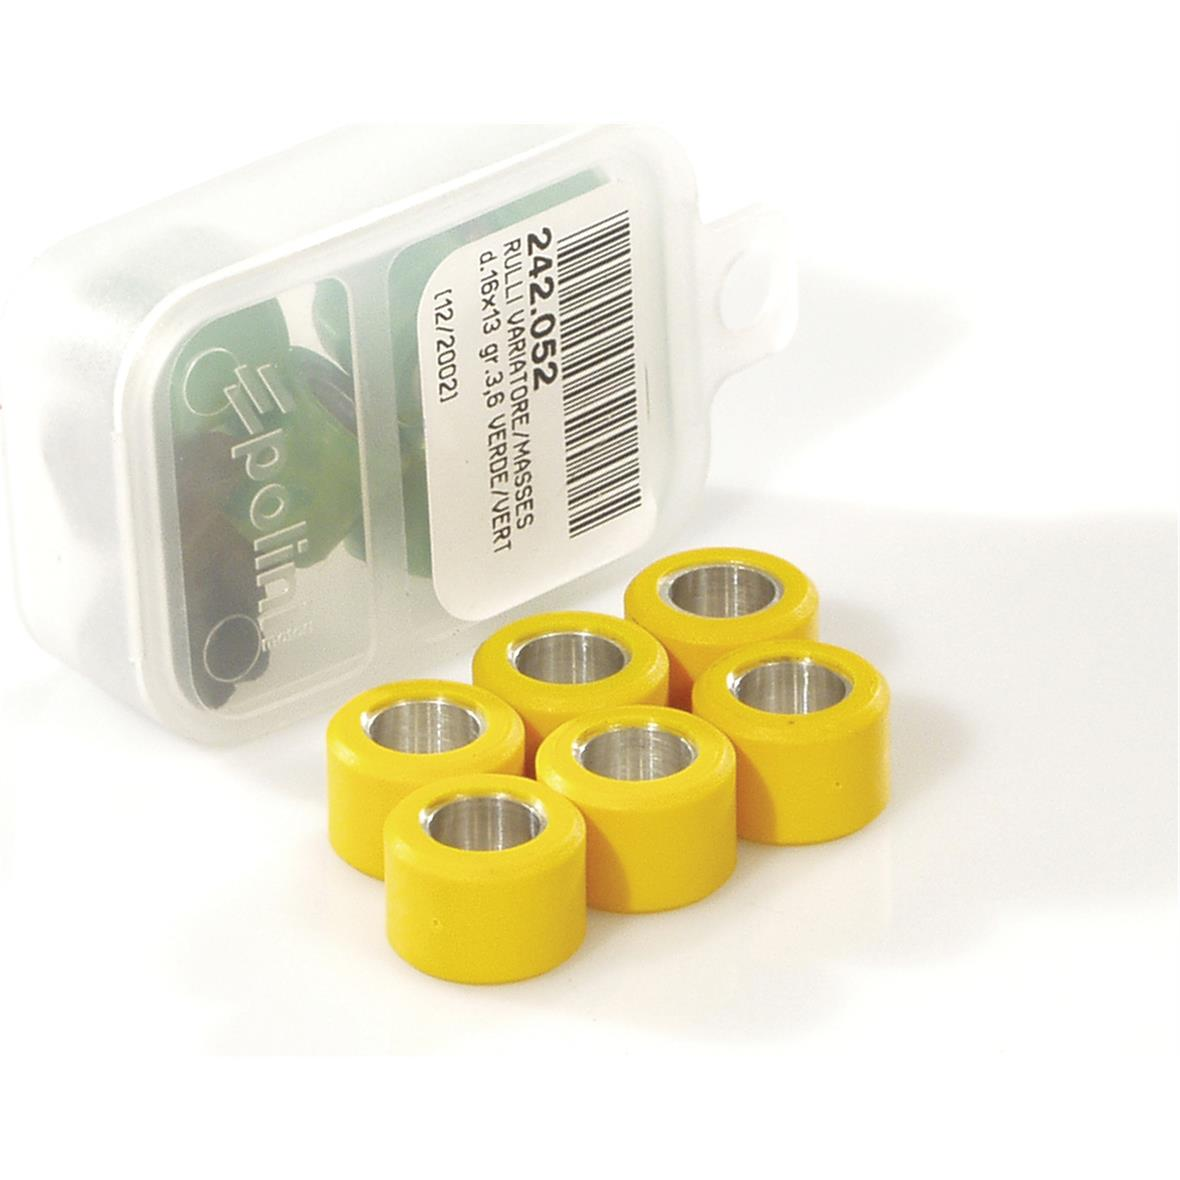 Product Image for 'Variator Rollers POLINI 19x13,5 mm 10,5gTitle'